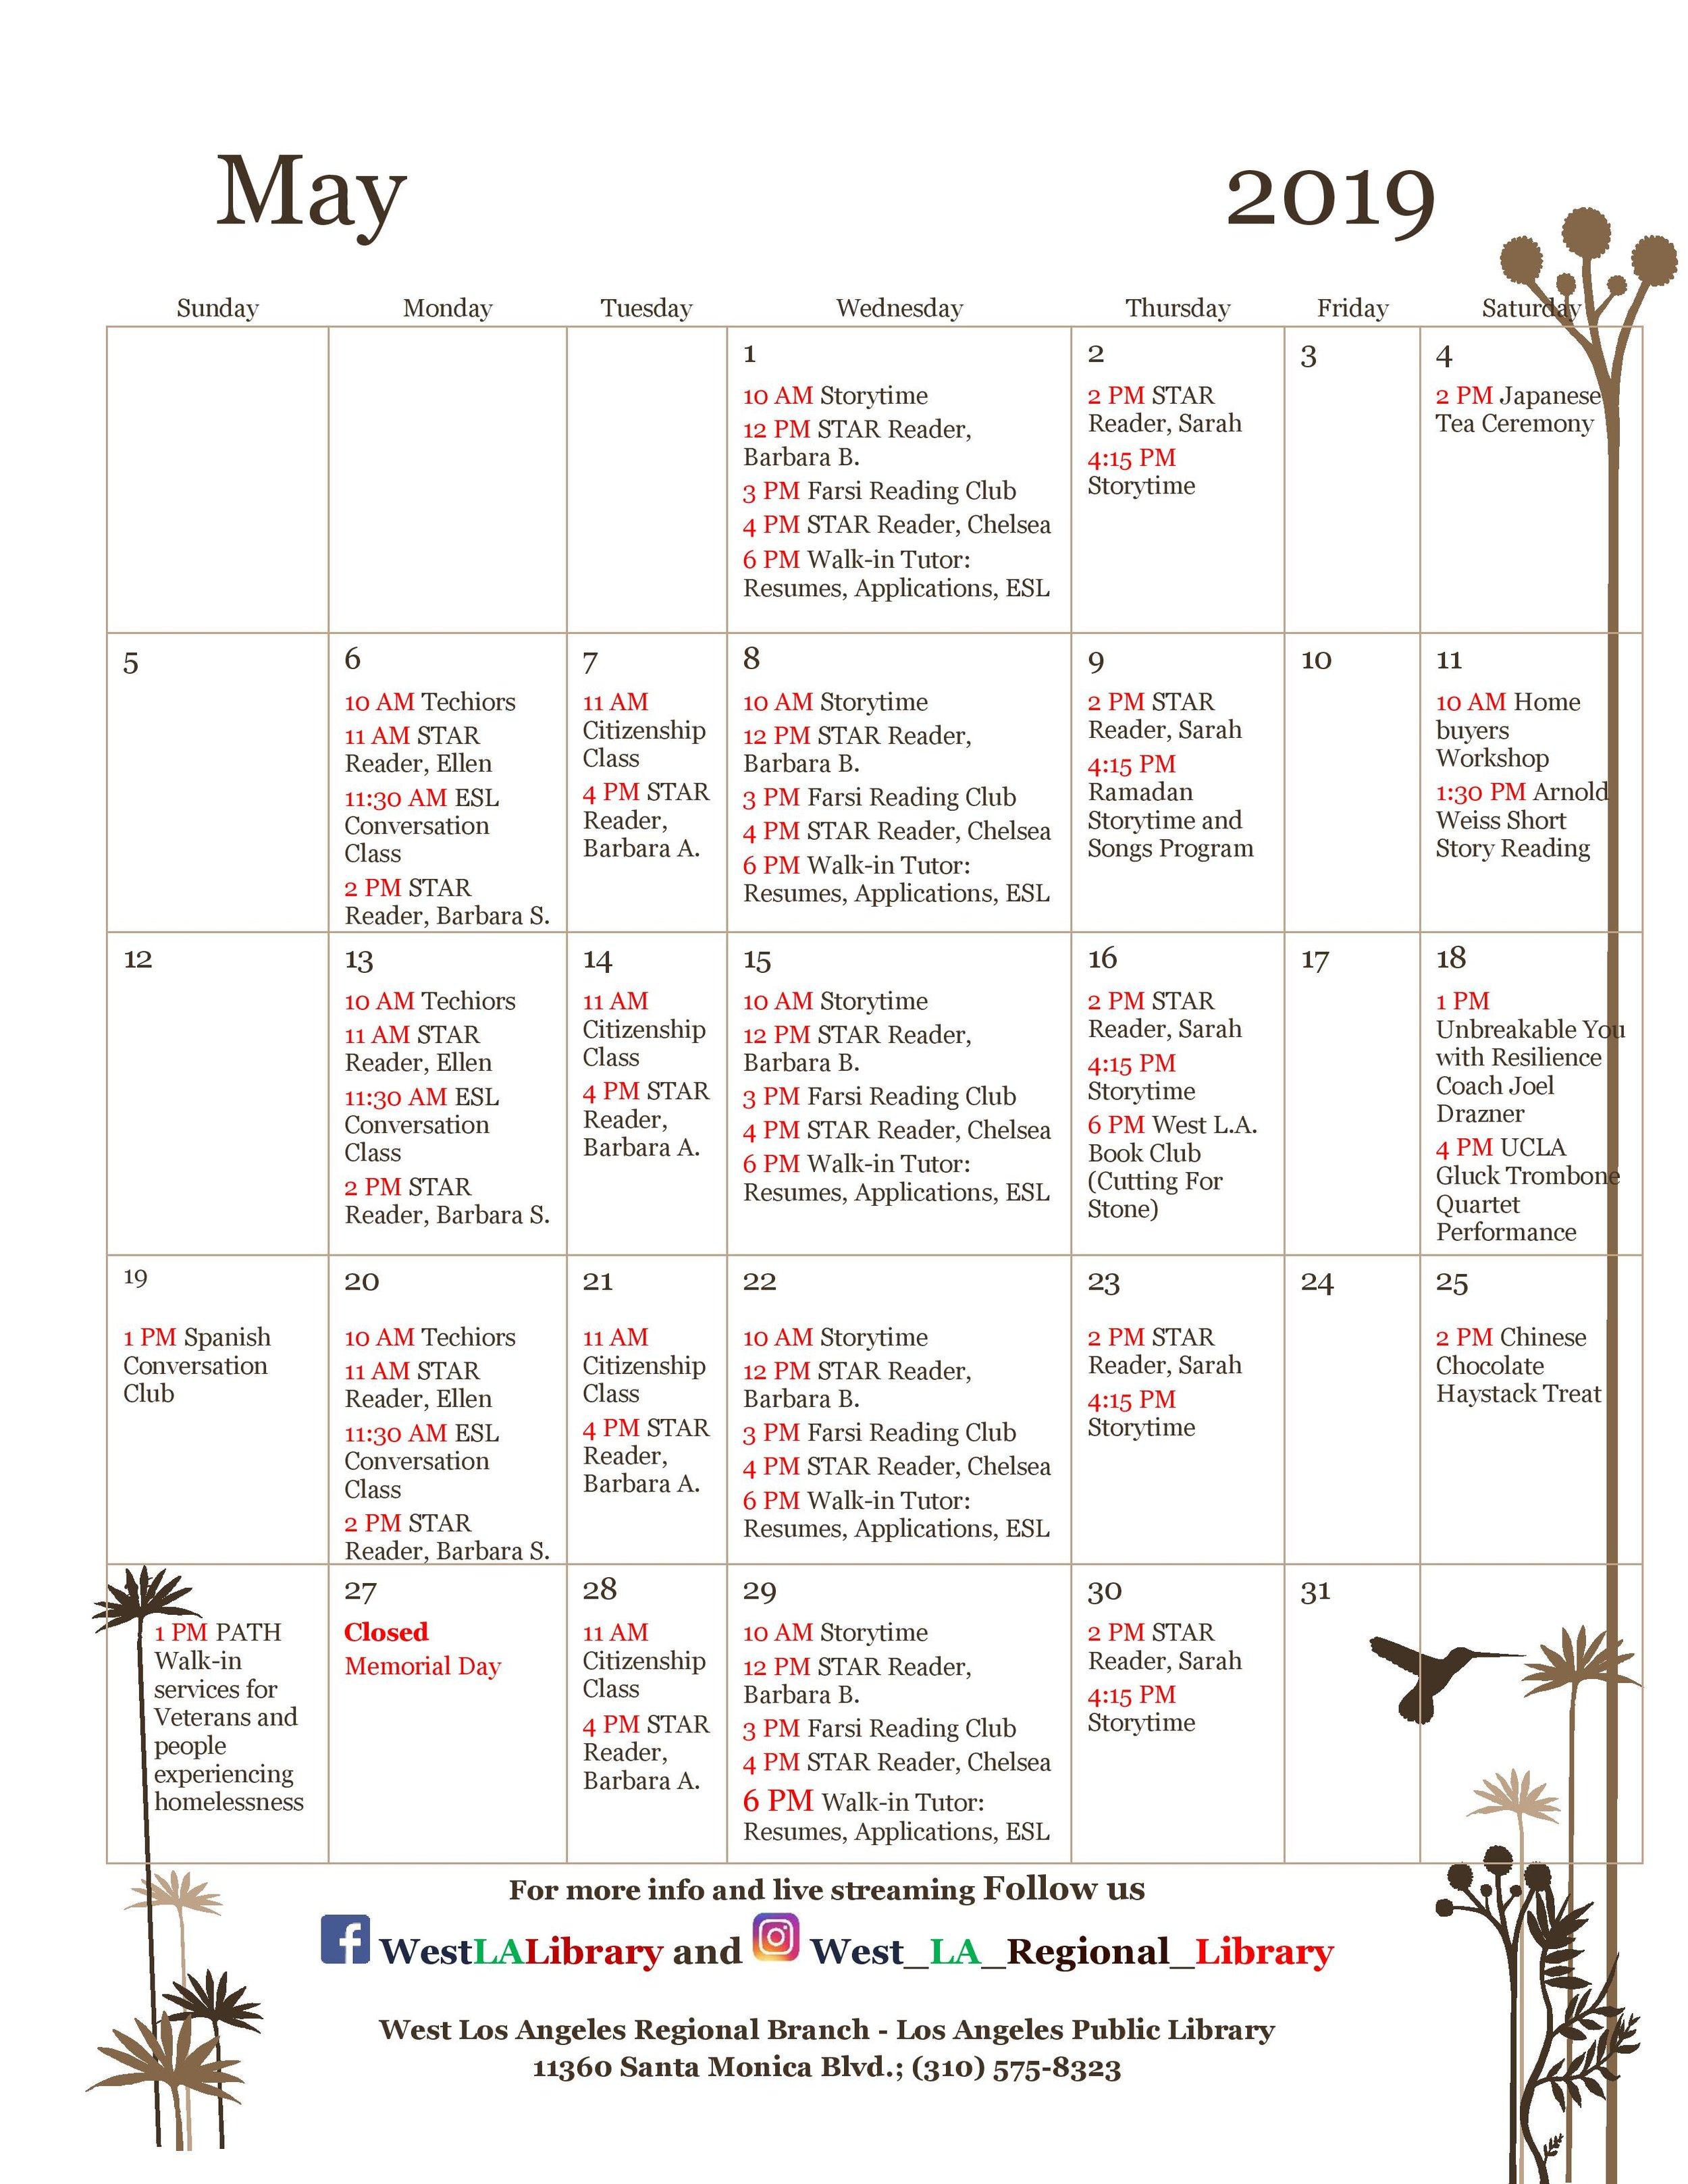 2019 5 May Programs West LA Library 1.jpg